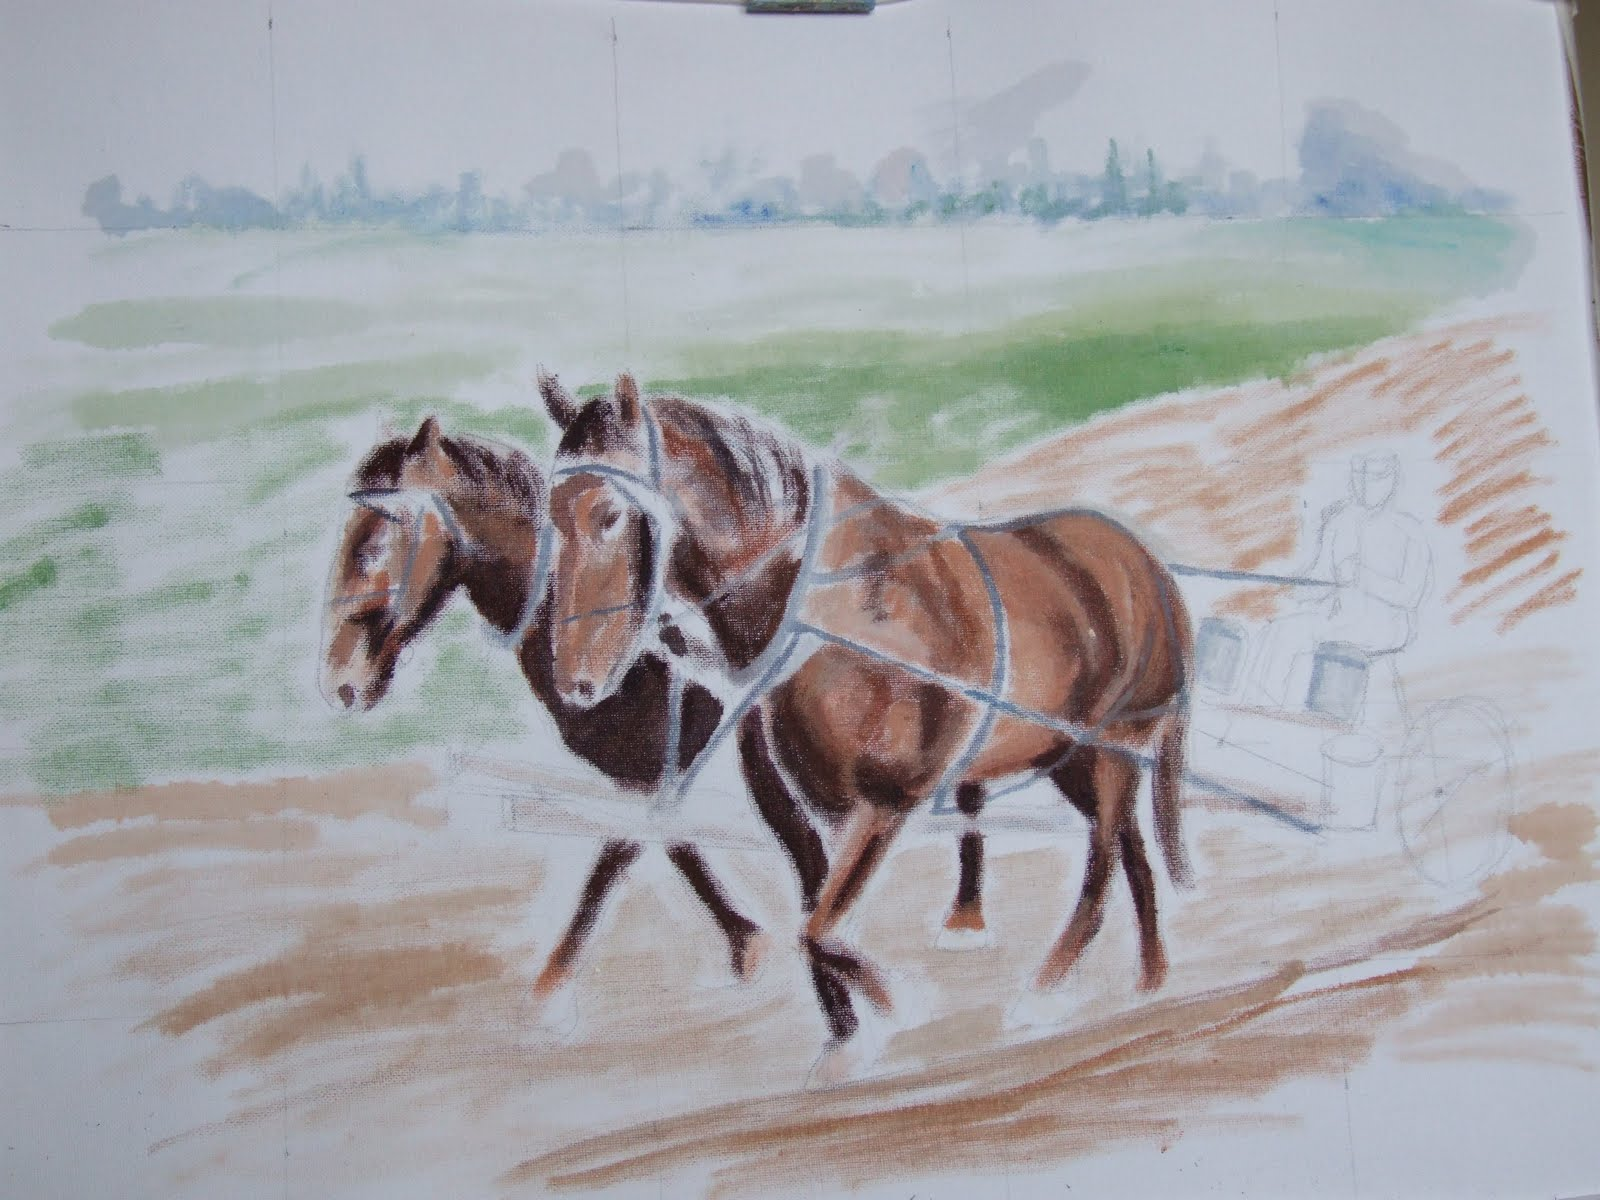 Plough horse oil painting step 2